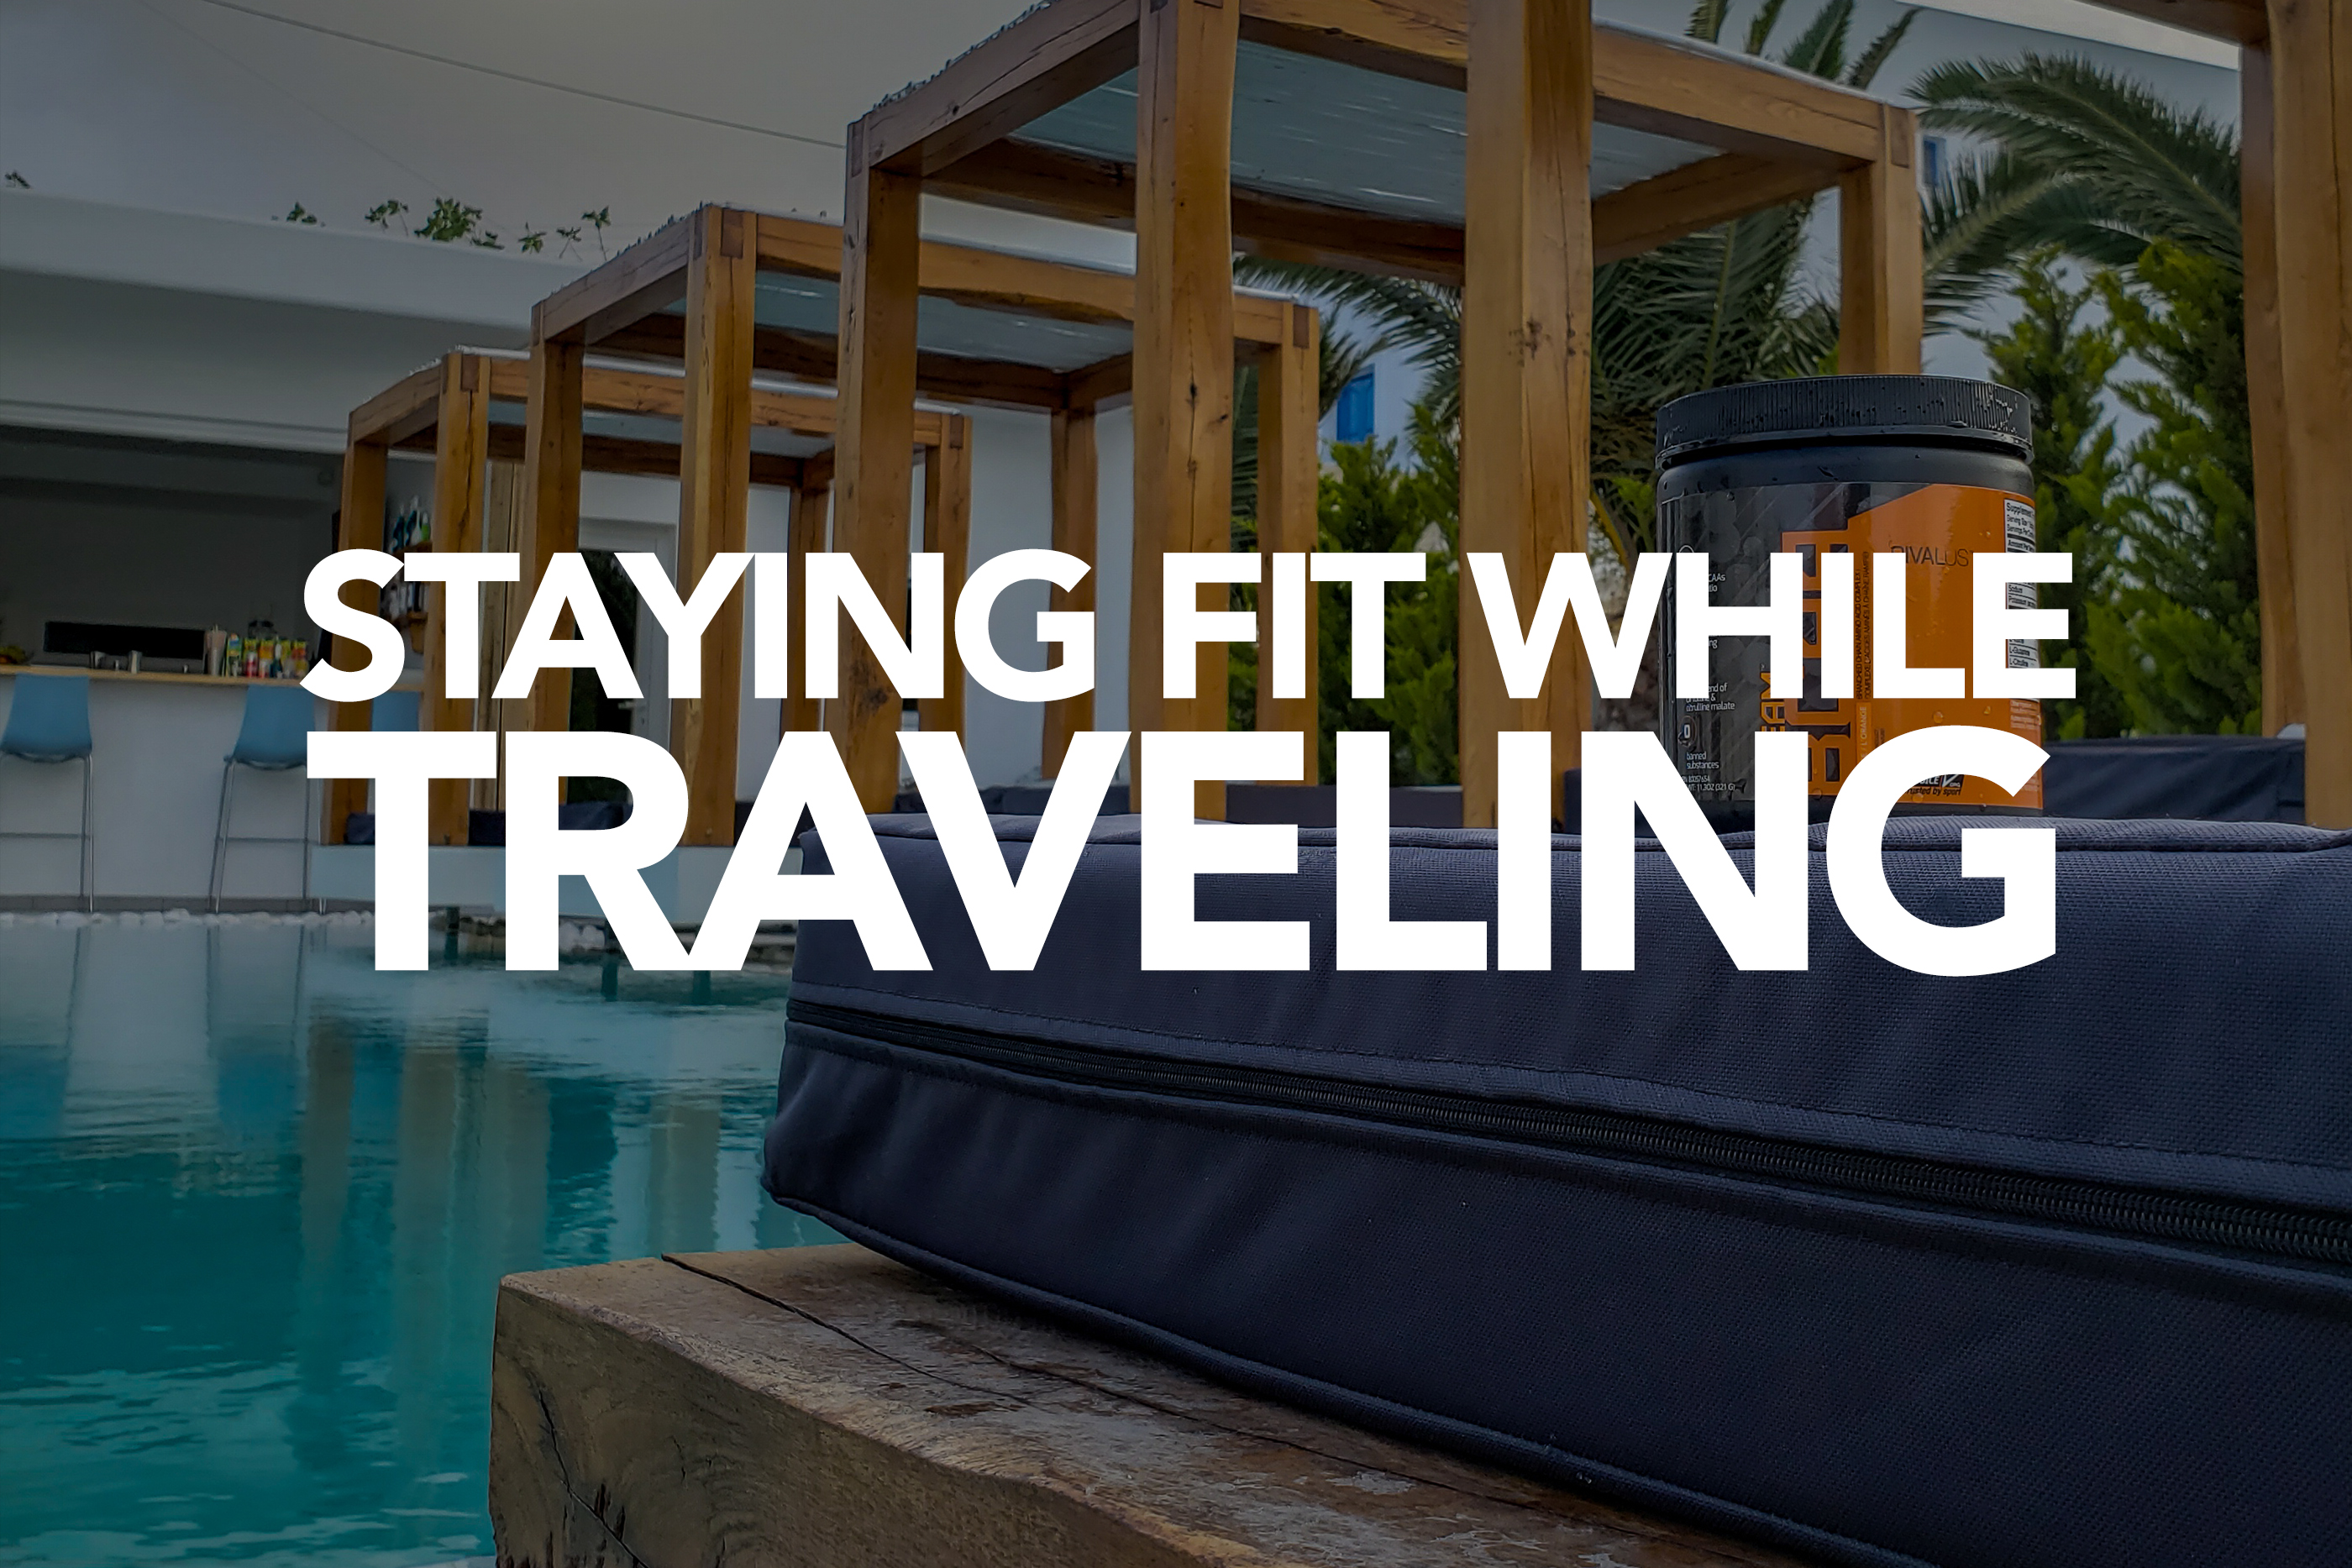 STAYING FIT WHILE TRAVELING